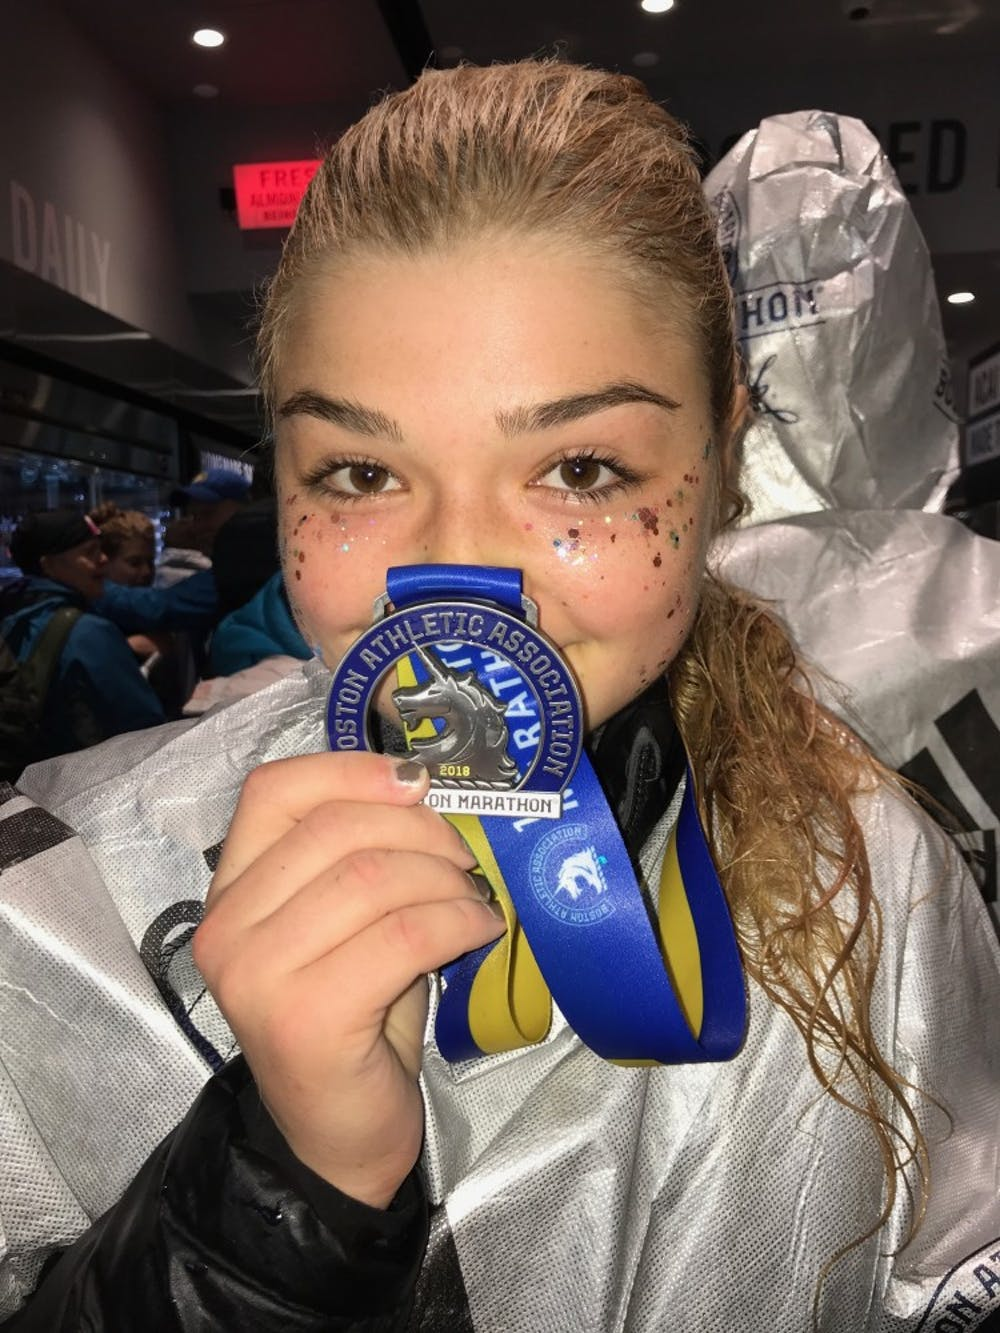 Dreary 2018 edition of the Boston Marathon features two runners with UNC ties